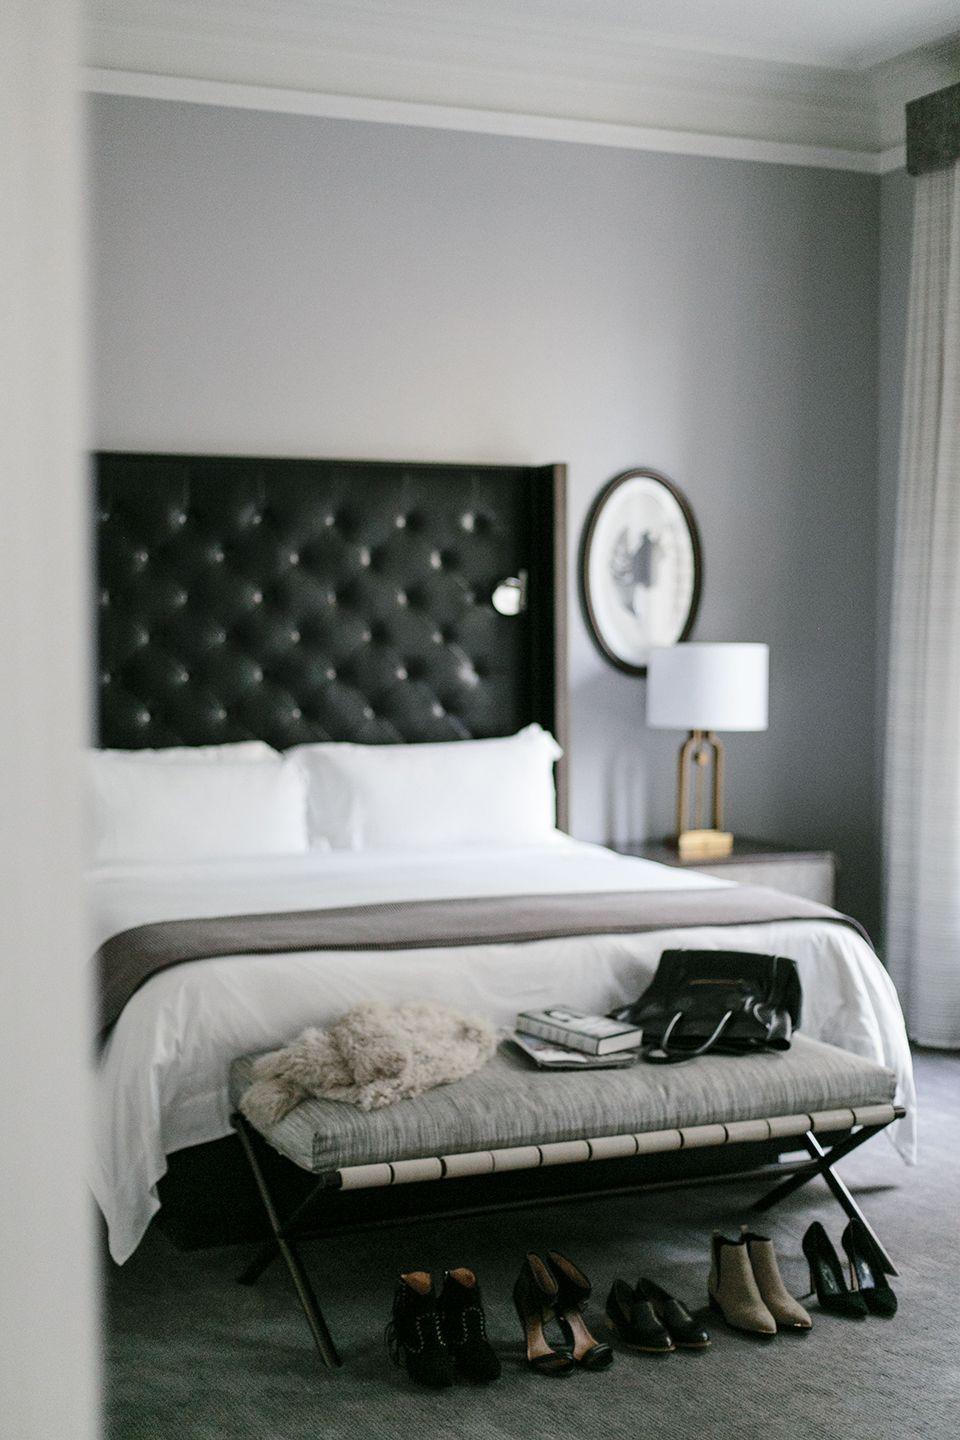 Black Headboard Black Headboard Bedroom Black Headboard Bedroom Refresh